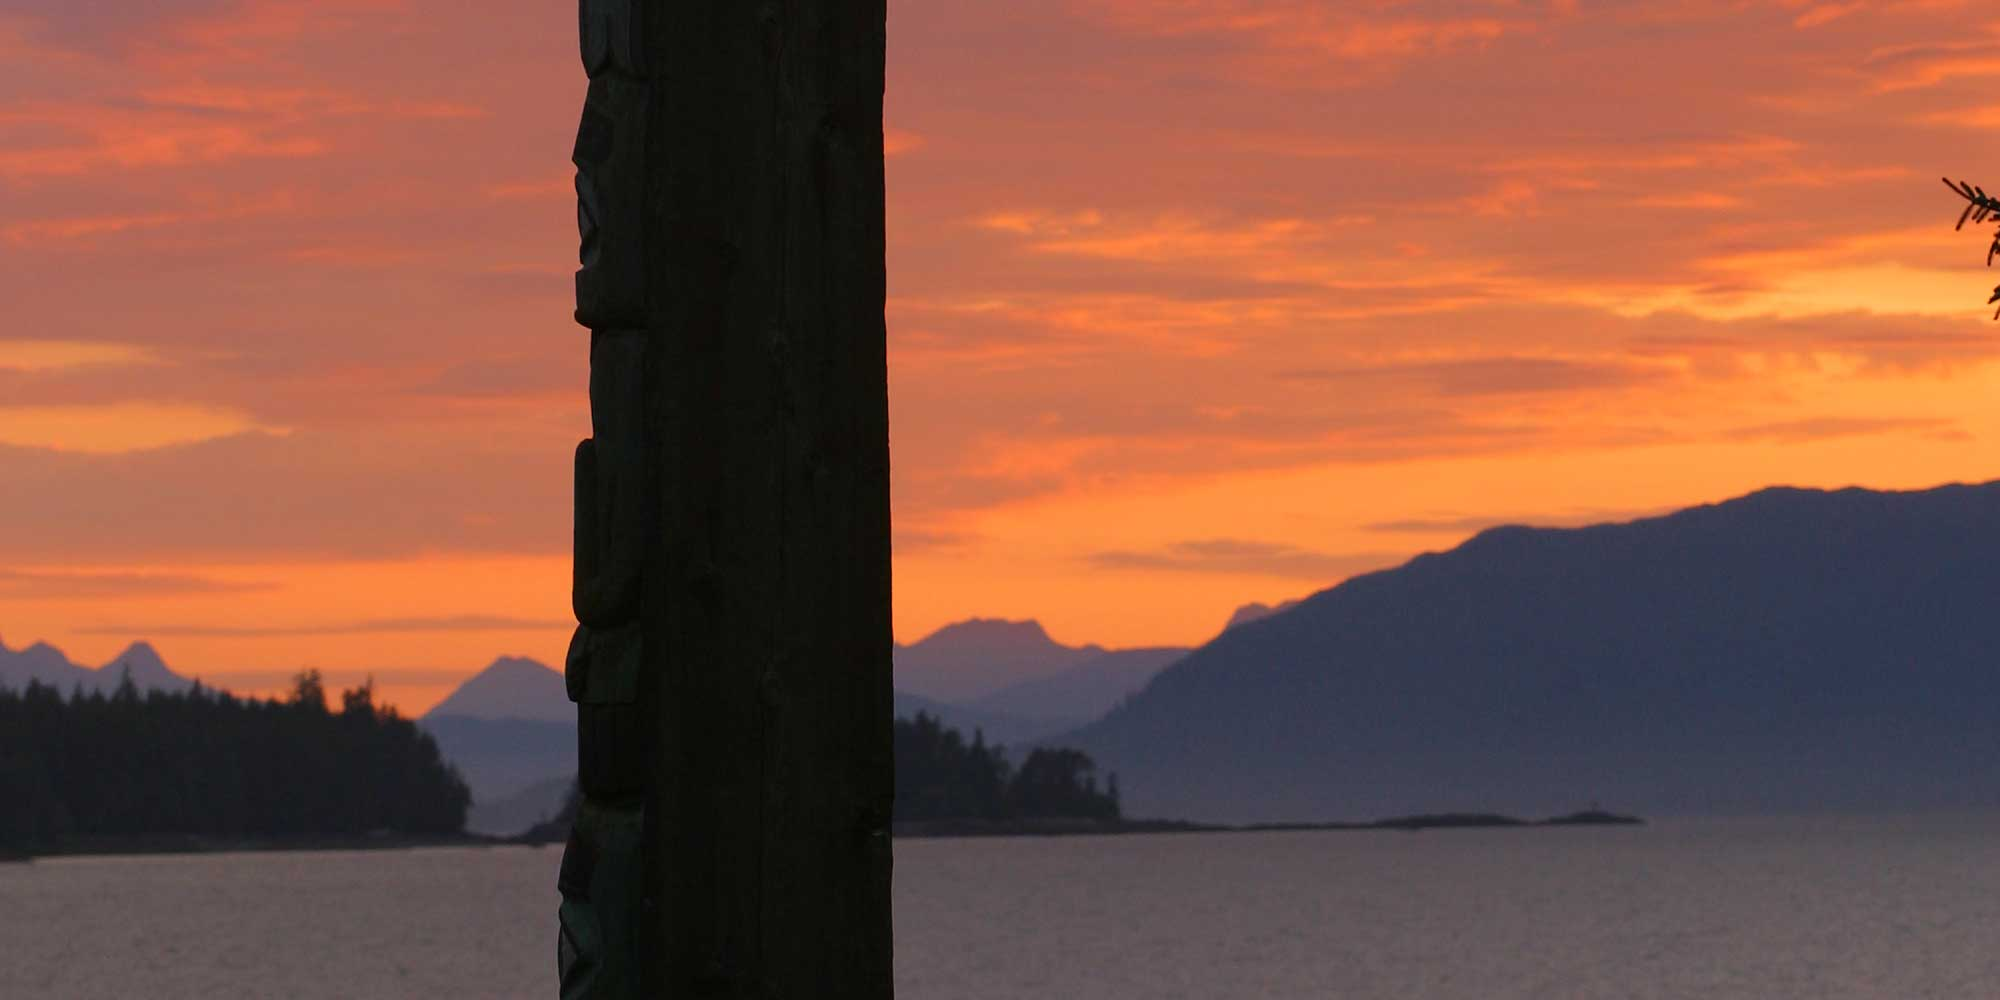 sunset with the silhouette of a totem pole in the foreground and mountains in the background